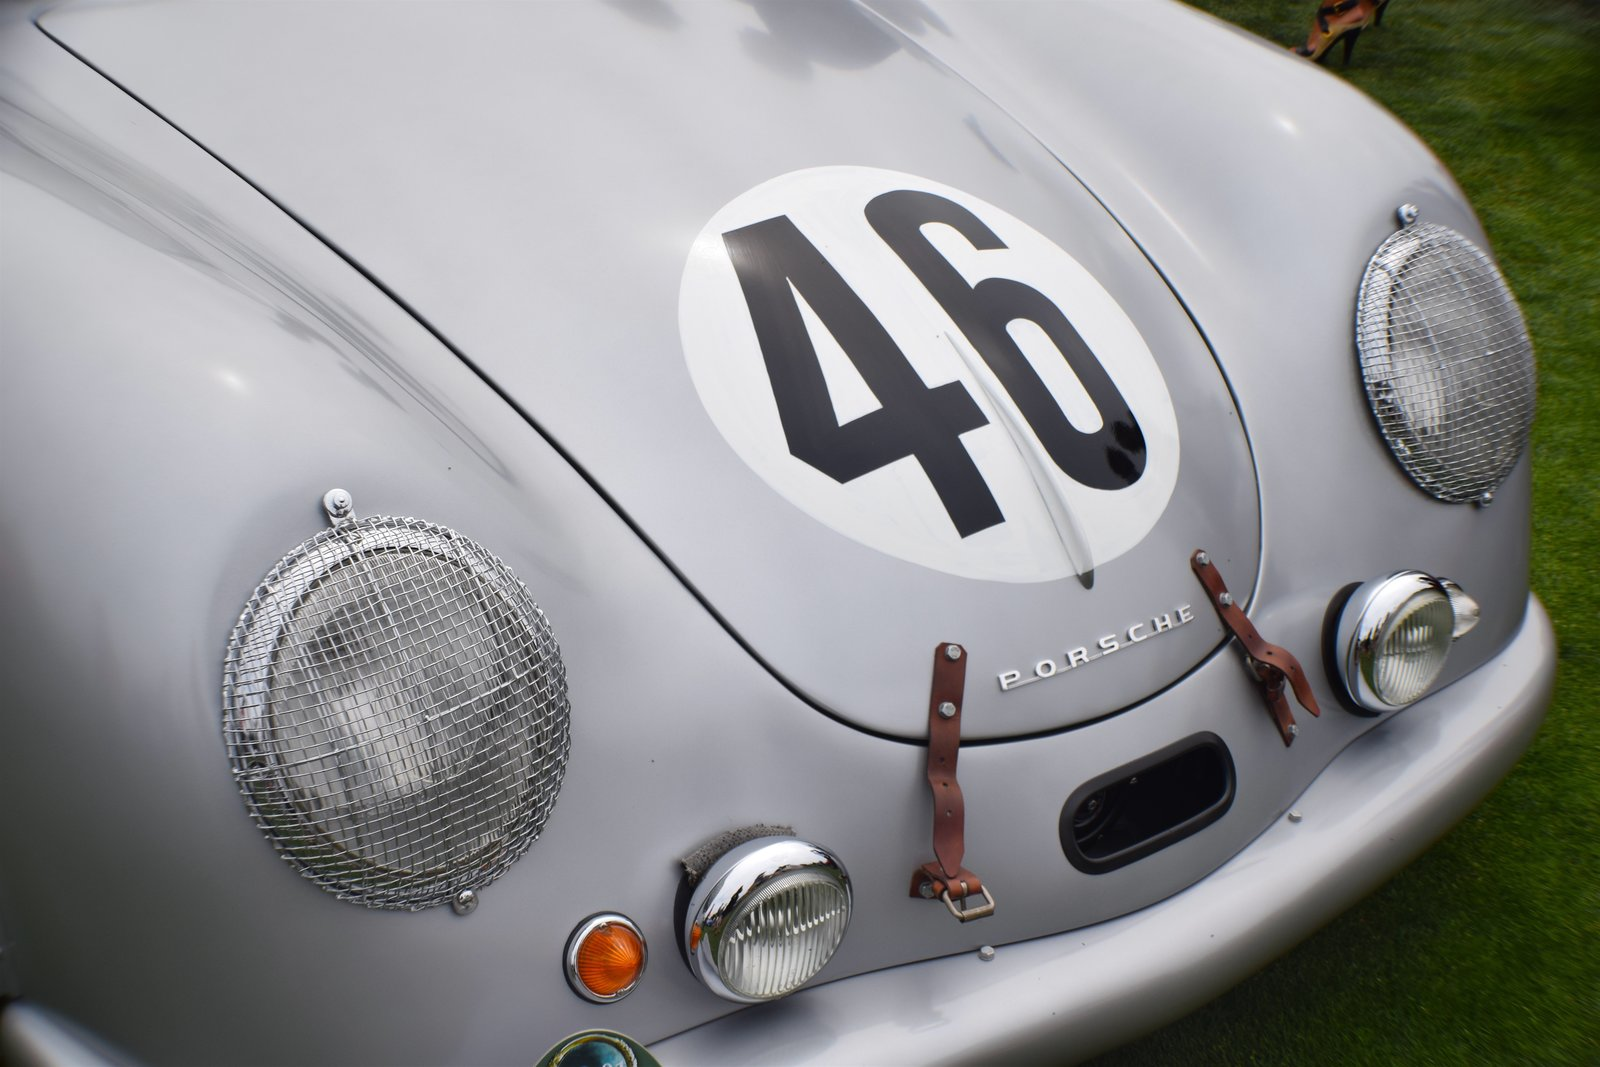 Coming from Portland, Oregon, this Porsche 356 SL Coupe was one of only four cars that were prepared for the 24 Hours of le Mans race in 1951. It was the only one that made it to the race without crashing. Though it finished 20th overall, it won first in its class (1100 cc), which became Porsche's first win in an international race and marked the beginning of their extended connection to international endurance racing.  Photo 4 of 10 in A Day at the Pebble Beach Concours d'Elegance Car Show